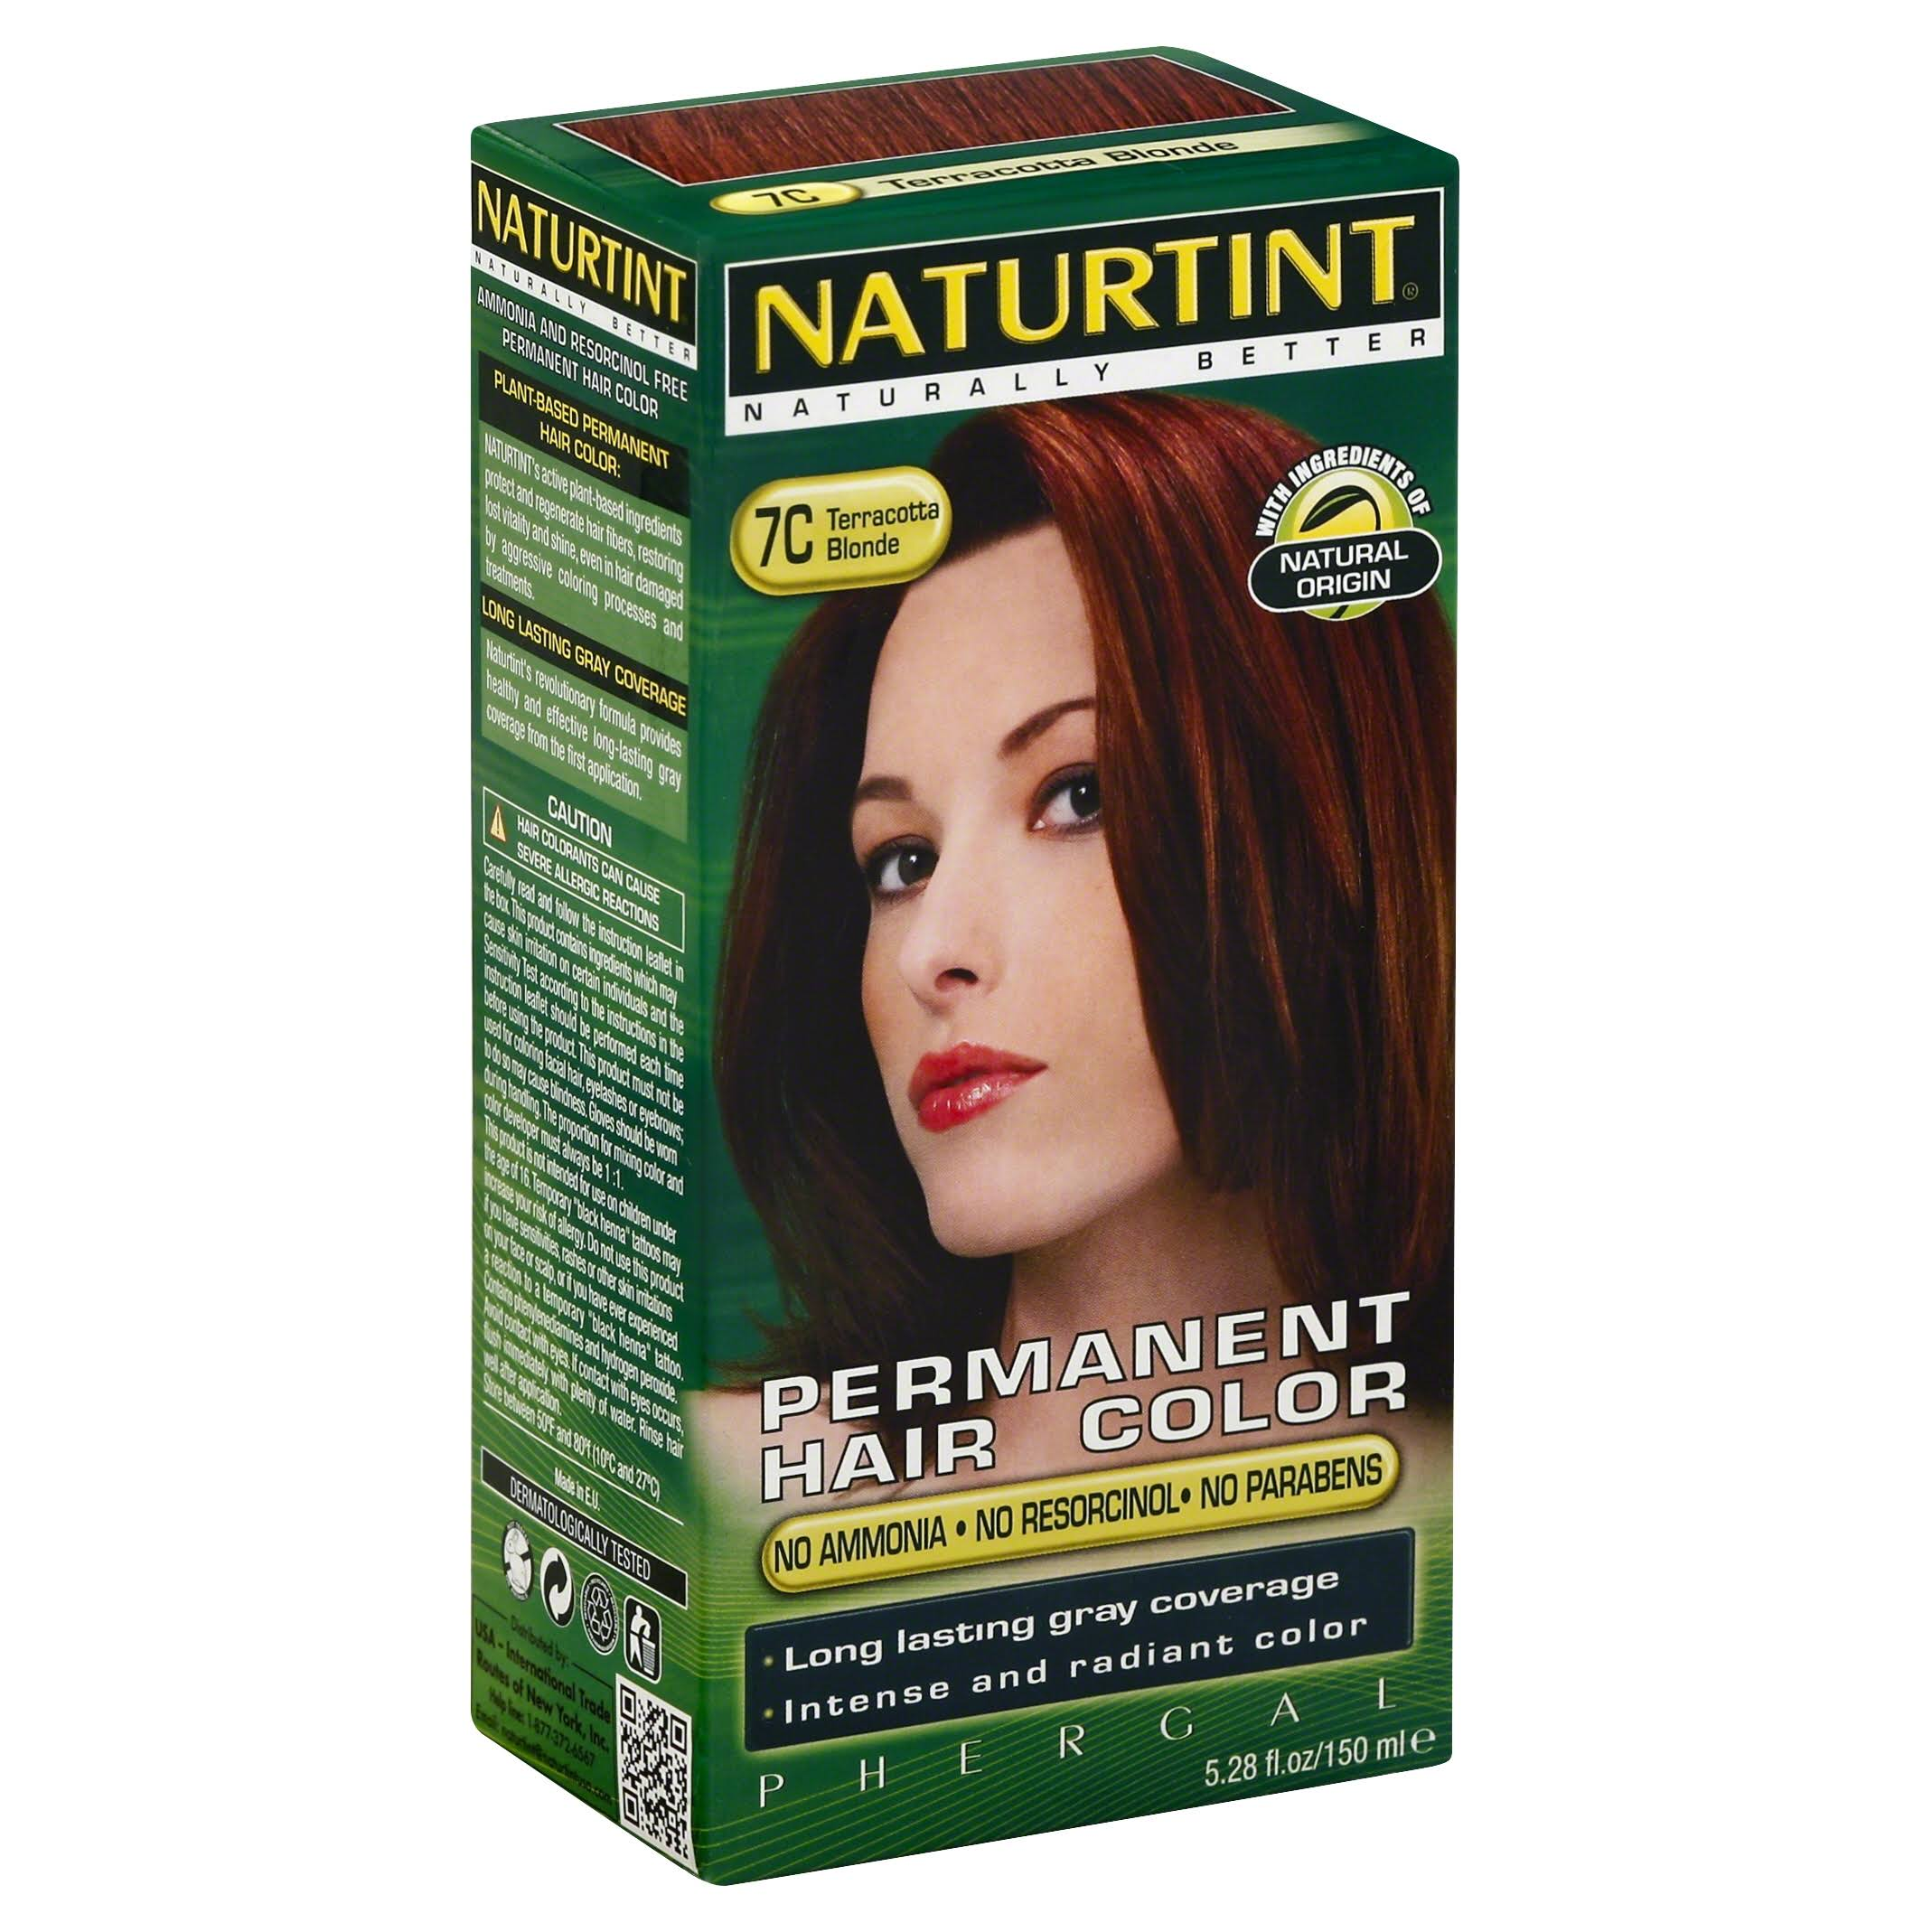 Naturtint Permanent Hair Colorant - Terracotta Blonde, 135ml